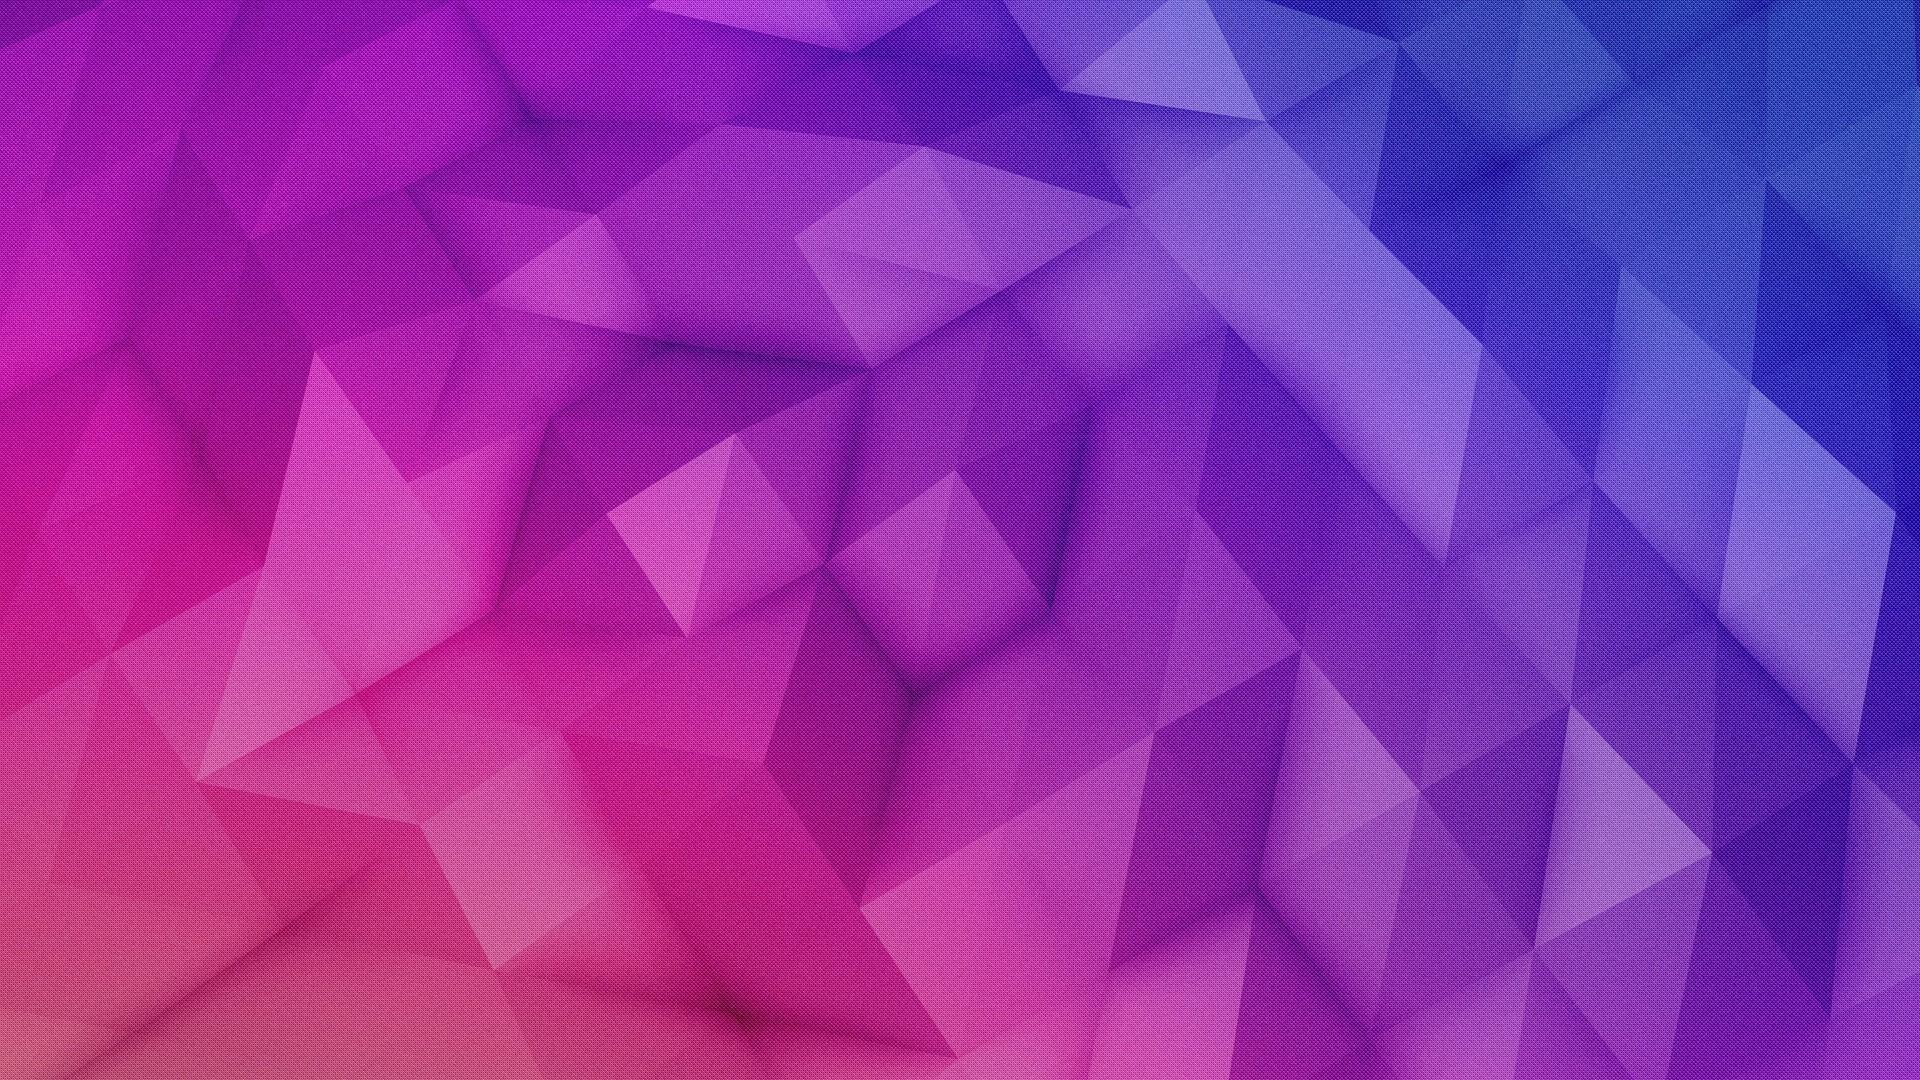 Polygon wallpaper – wallpaper free download